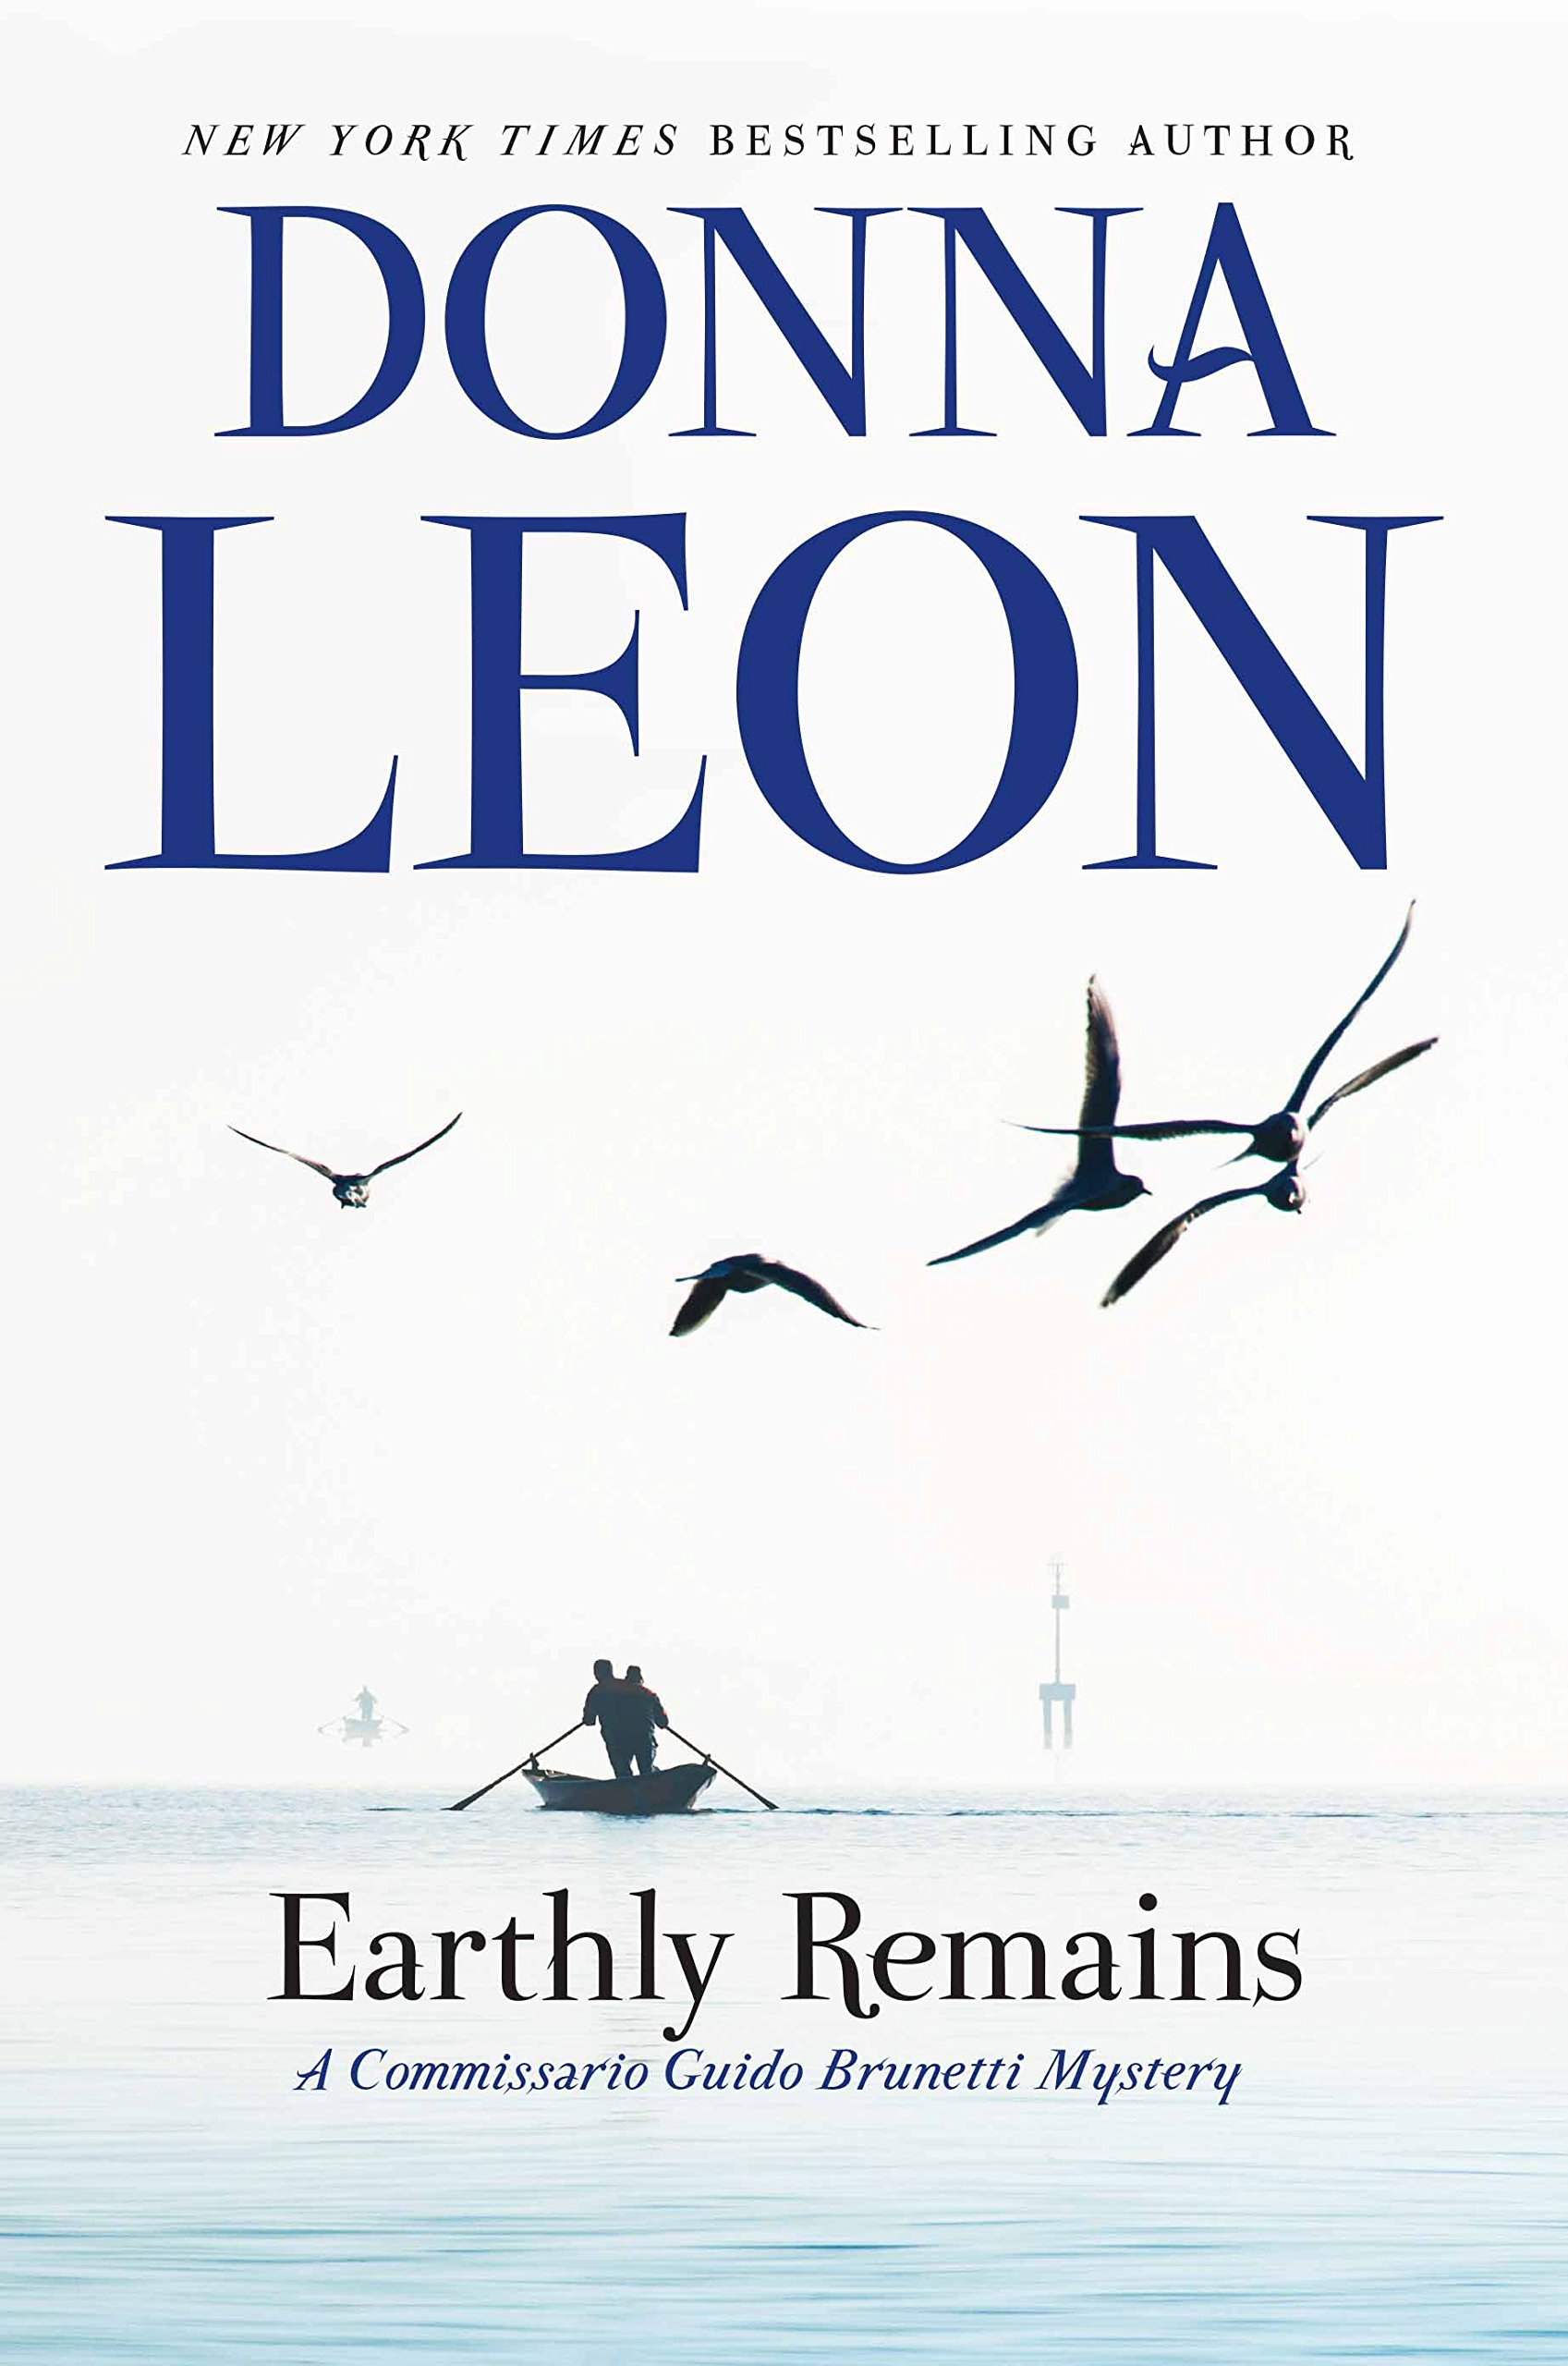 Earthly Remains: A Commissario Guido Brunetti Mystery pdf